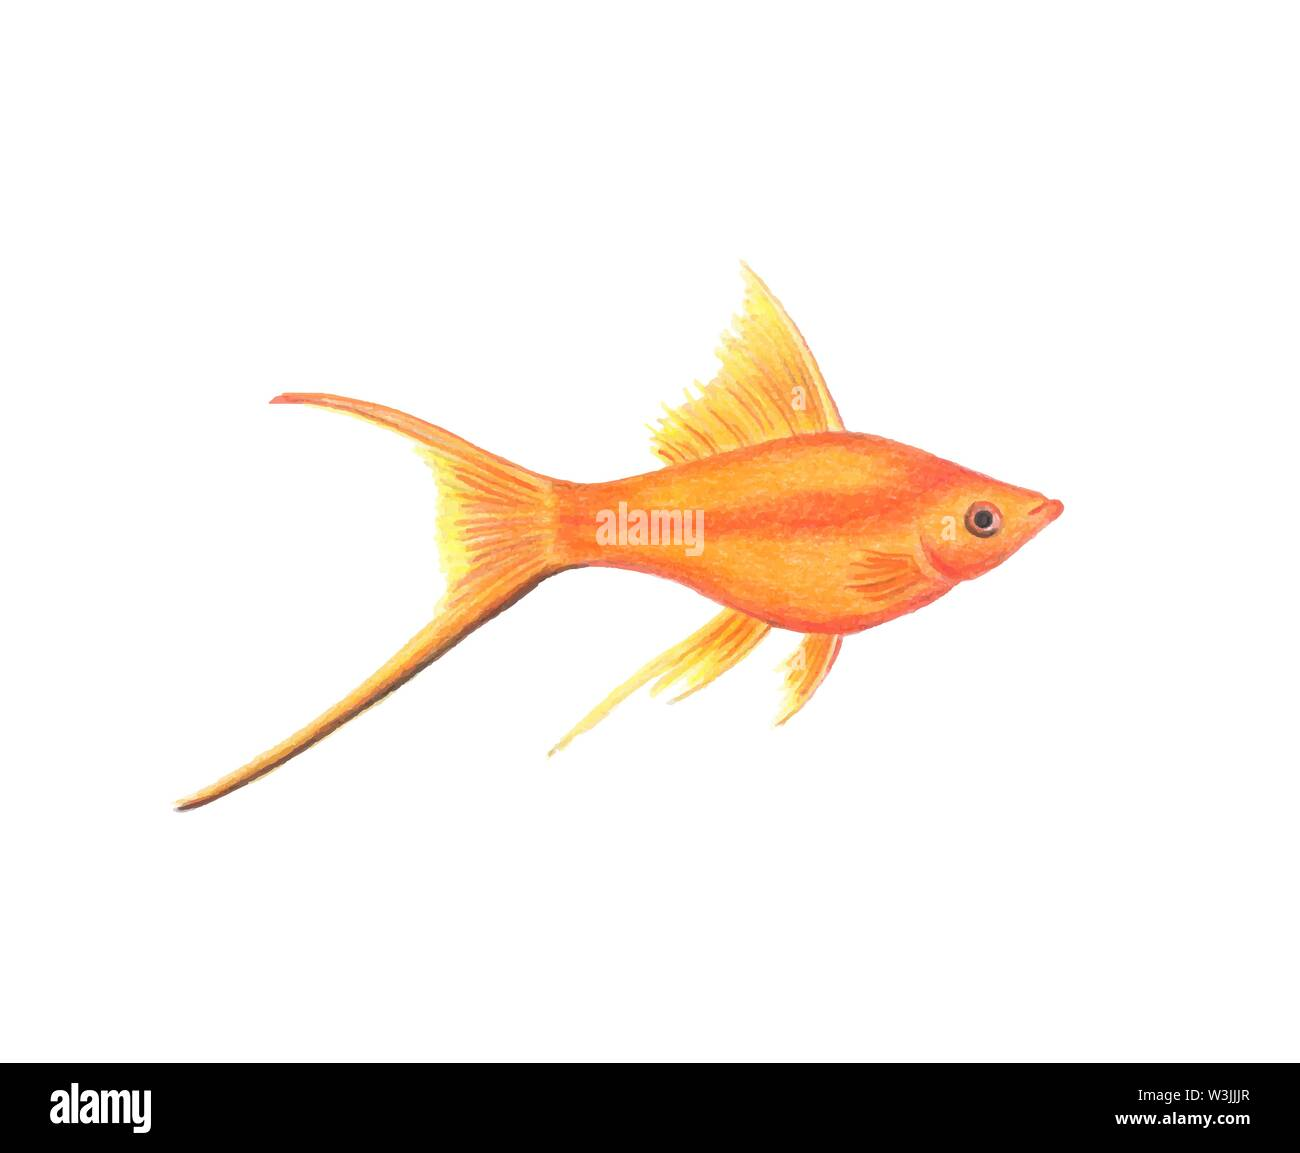 Vector swordtail fish illustration realistic drawing by colored pencils red Poeciliidae fish zoological illustration isolated on white background Stock Vector